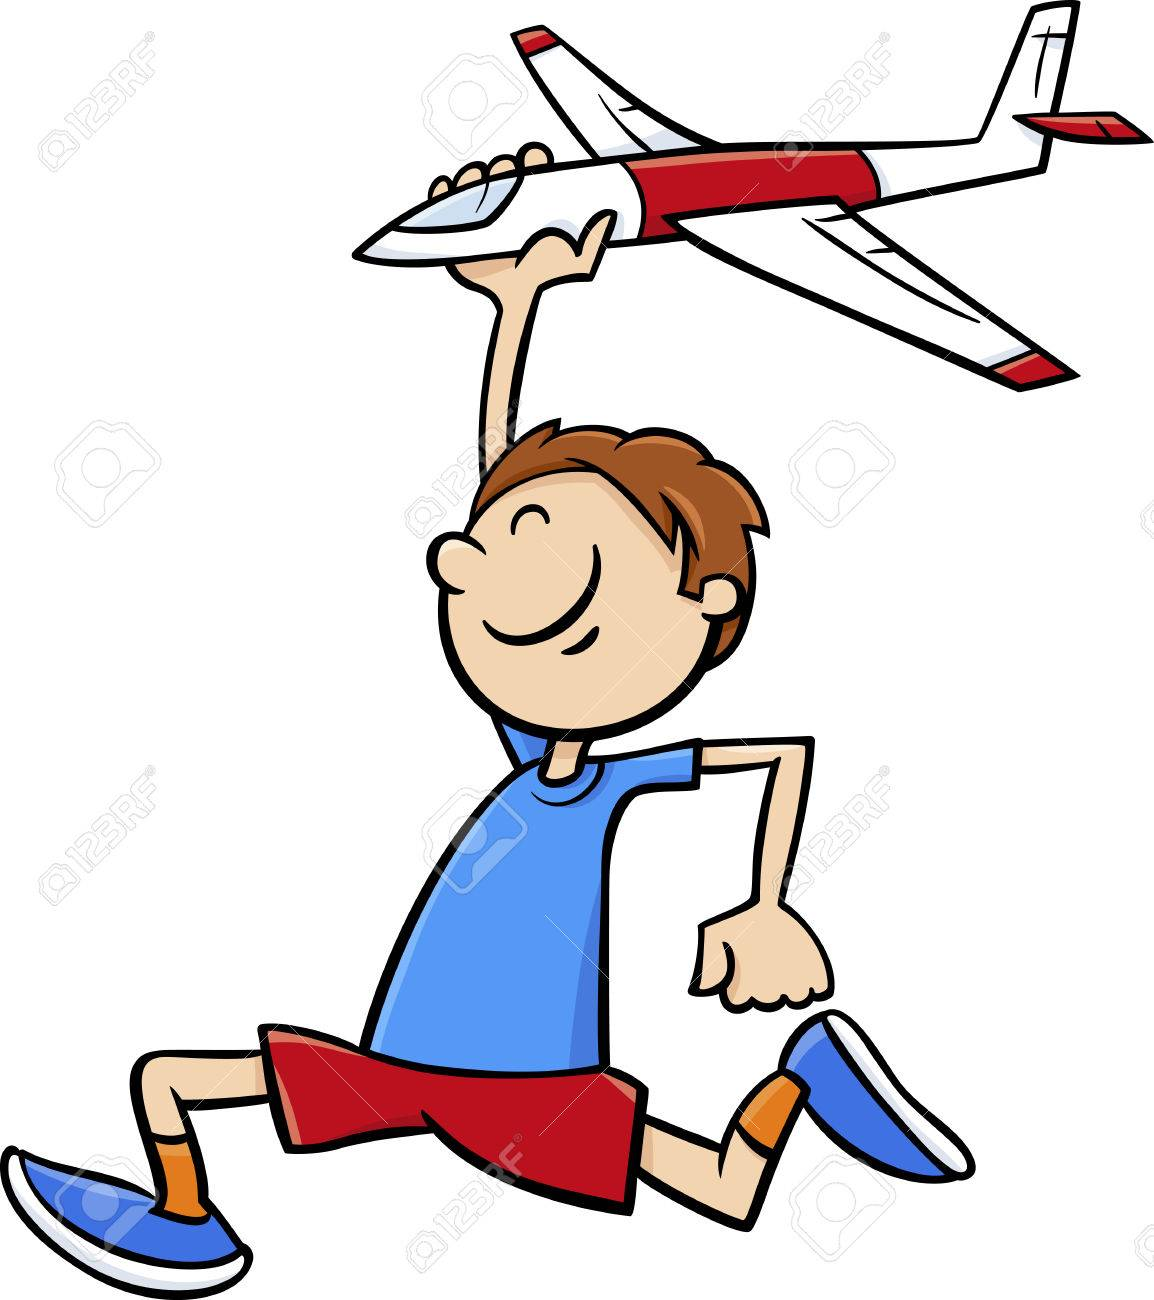 Cartoon Illustration Of Happy Little Boy With Toy Plane Royalty